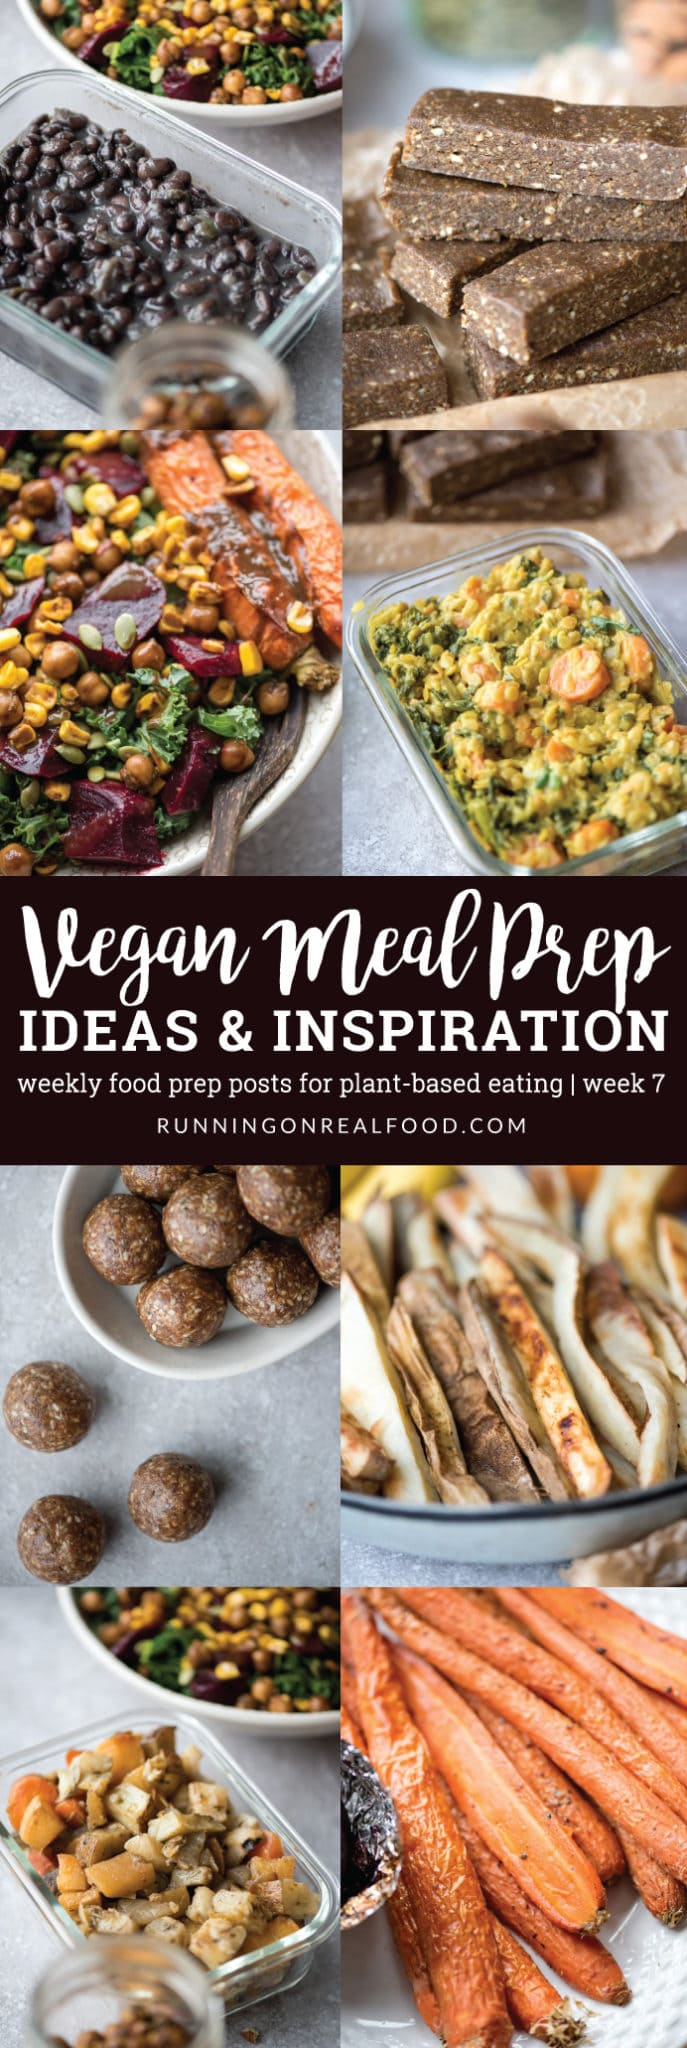 Vegan meal prep ideas including curried red lentils, homemade black beans, roasted beet salad, almond protein bars, oil-free baked fries and more. New posts weekly with ideas and inspiration for how to do a plant-based food prep.